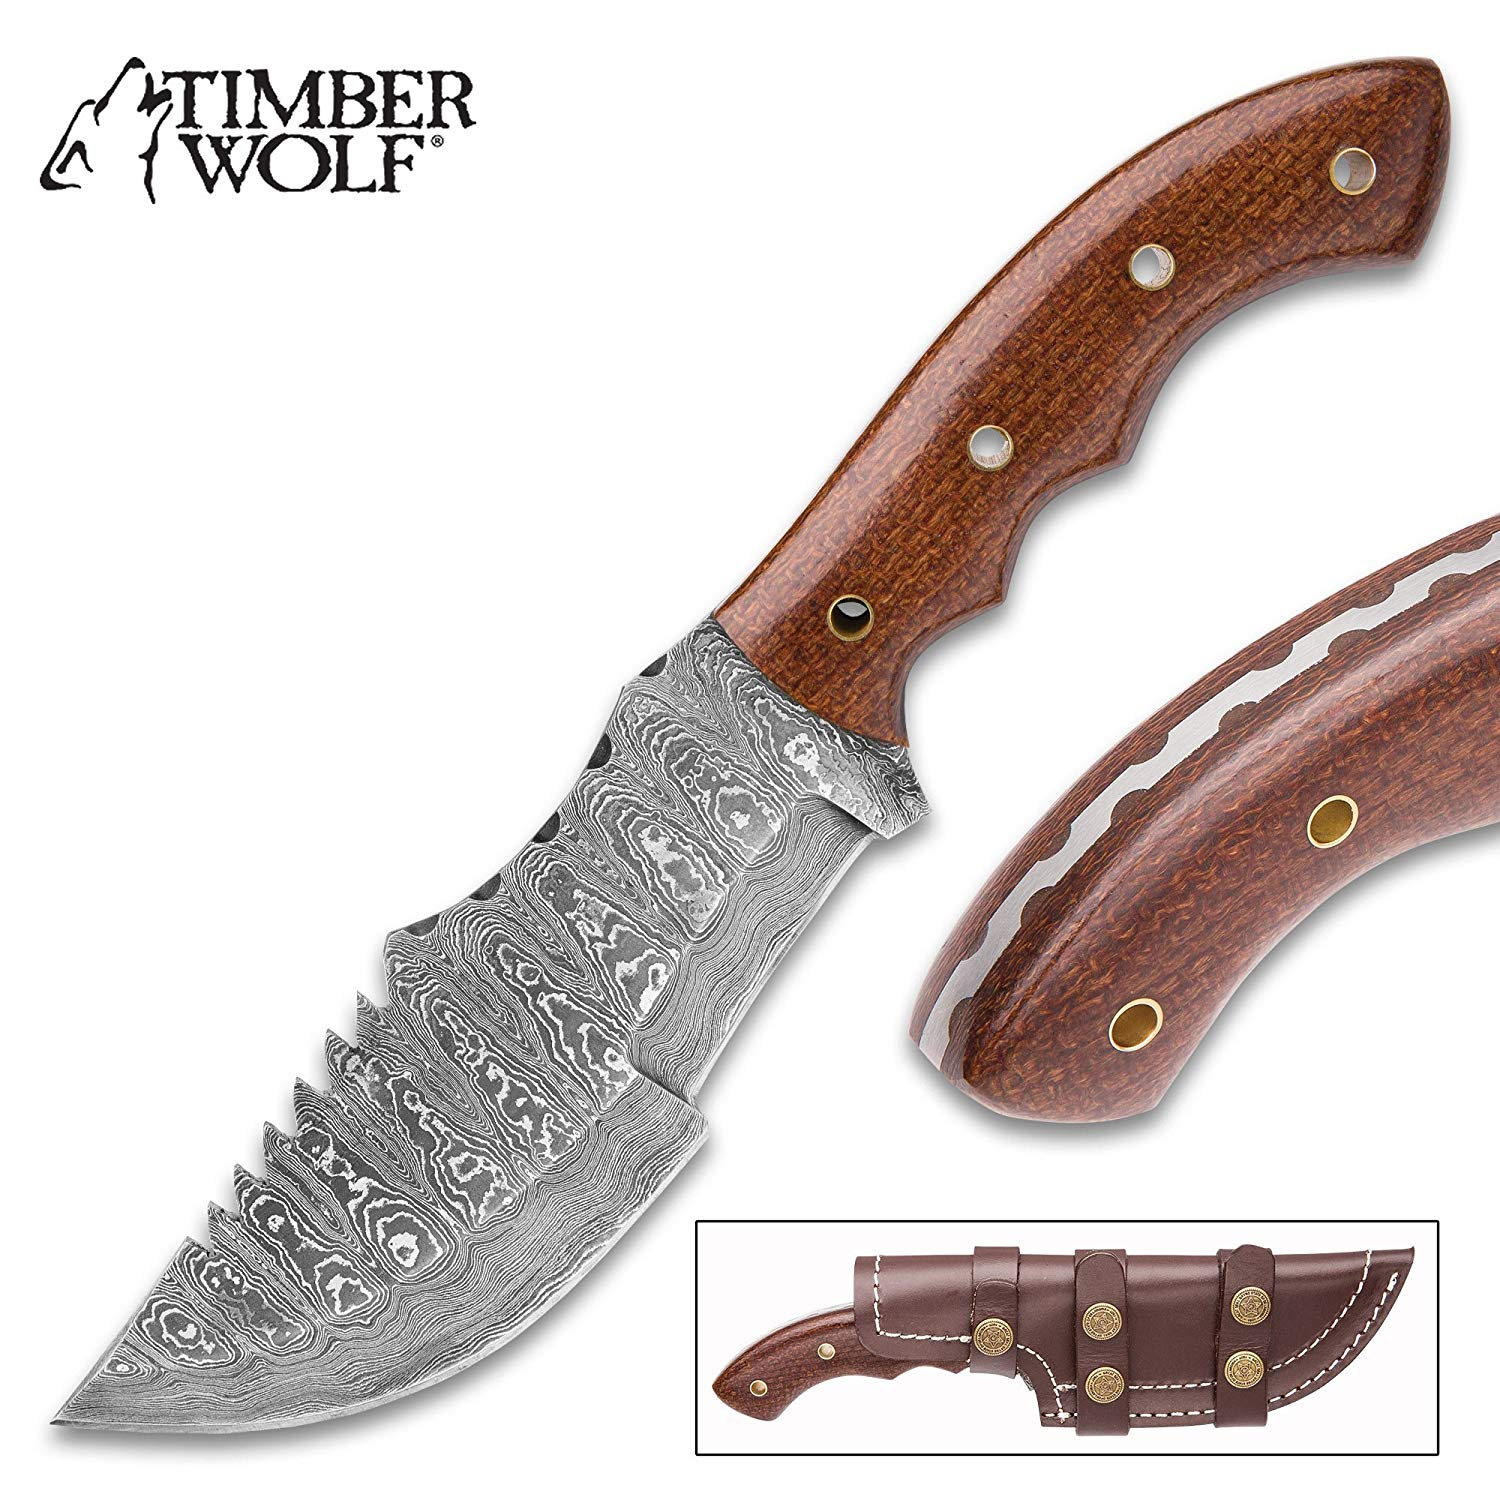 """Timber Wolf Walkabout Fixed Blade Knife - Hand Forged Damascus Steel - Full Tang - Burlap Micarta - Genuine Leather Sheath - Bowie Tracker Survival Multipurpose Utility Outdoors Chop Saw - 9 3/4"""""""